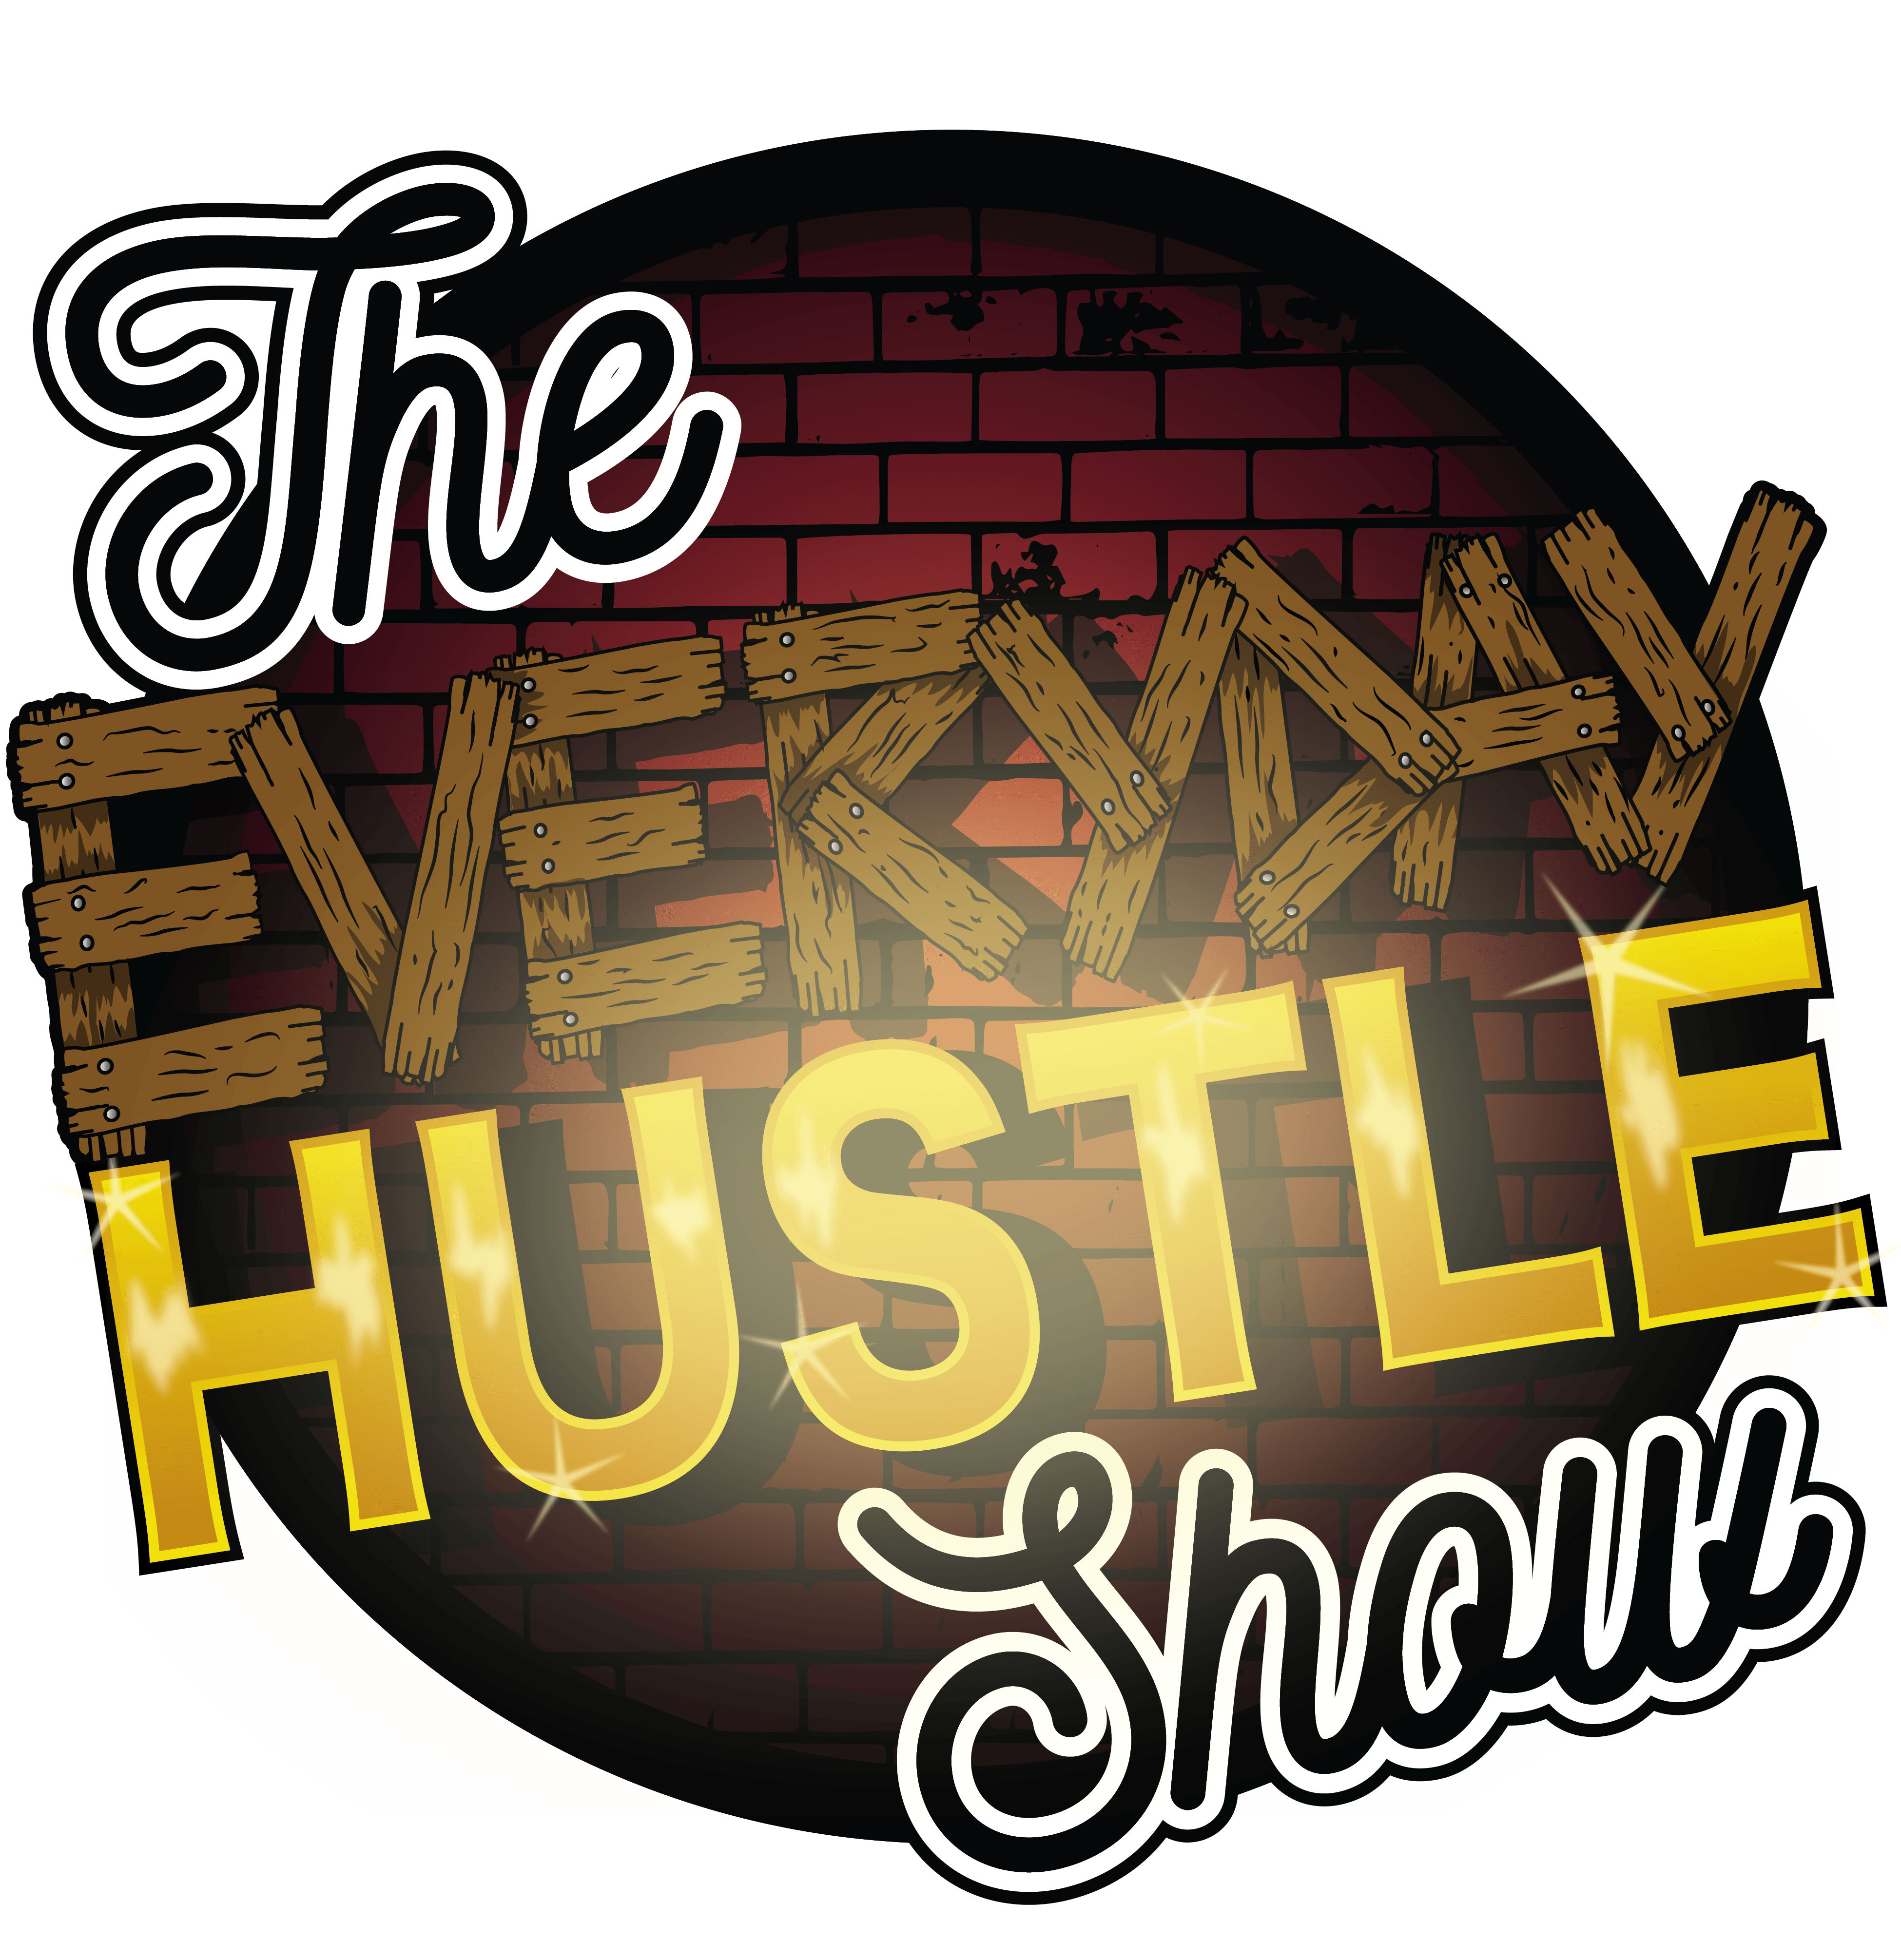 The Everyday Hustle Show show art